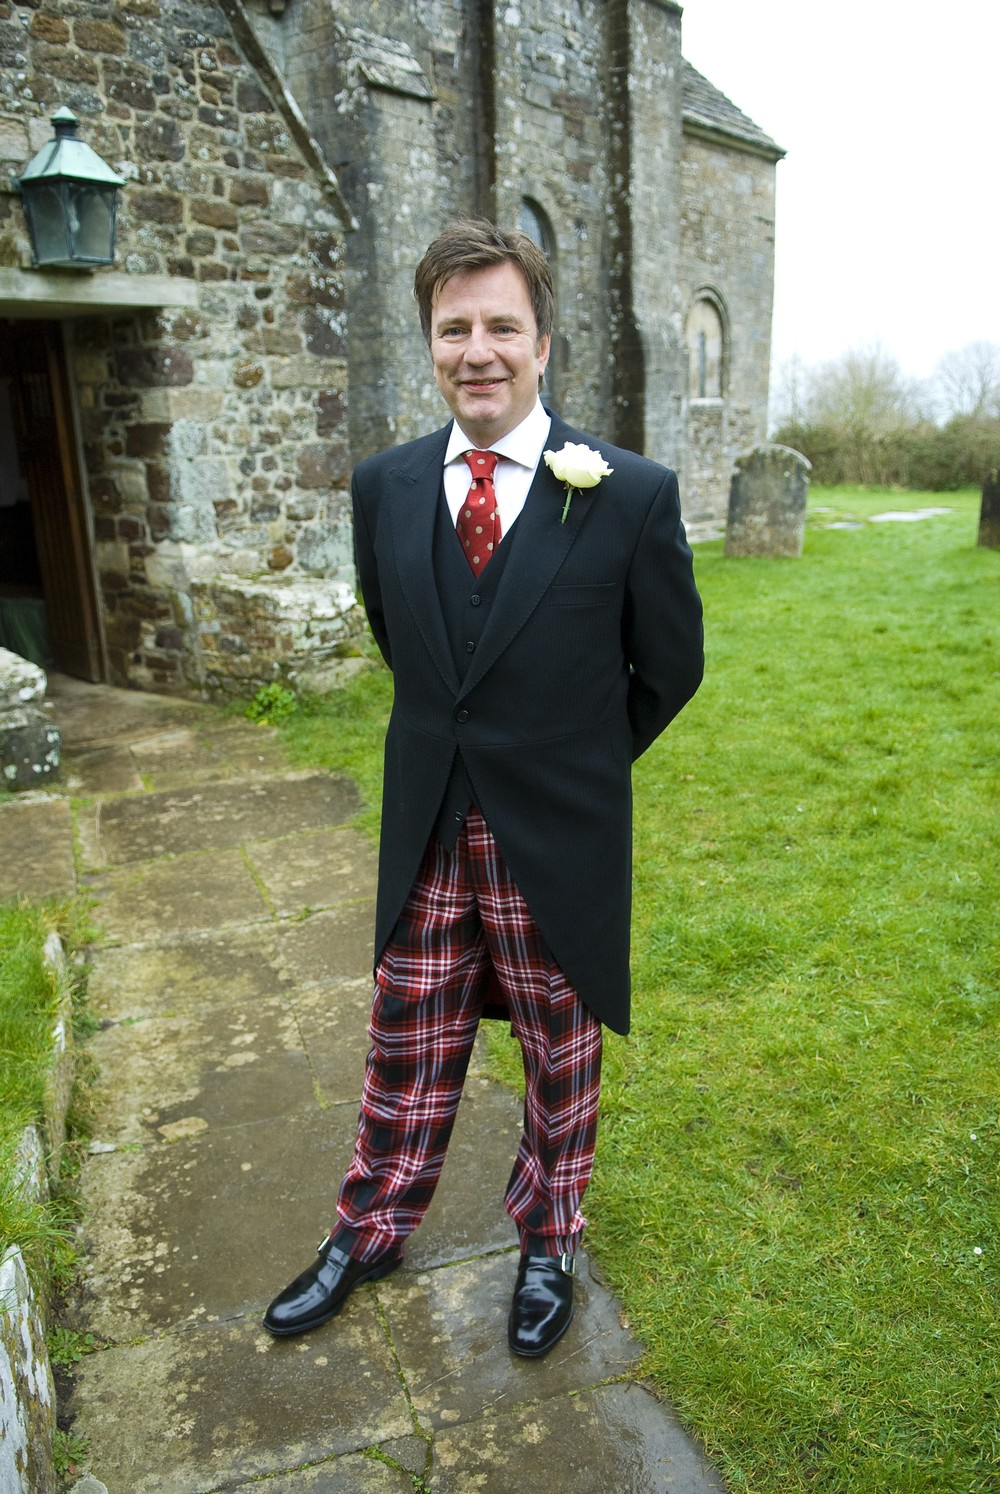 jonathan-hall-morning-coat-shirt-bespoke-tie-all-uk-made-wedding.jpg